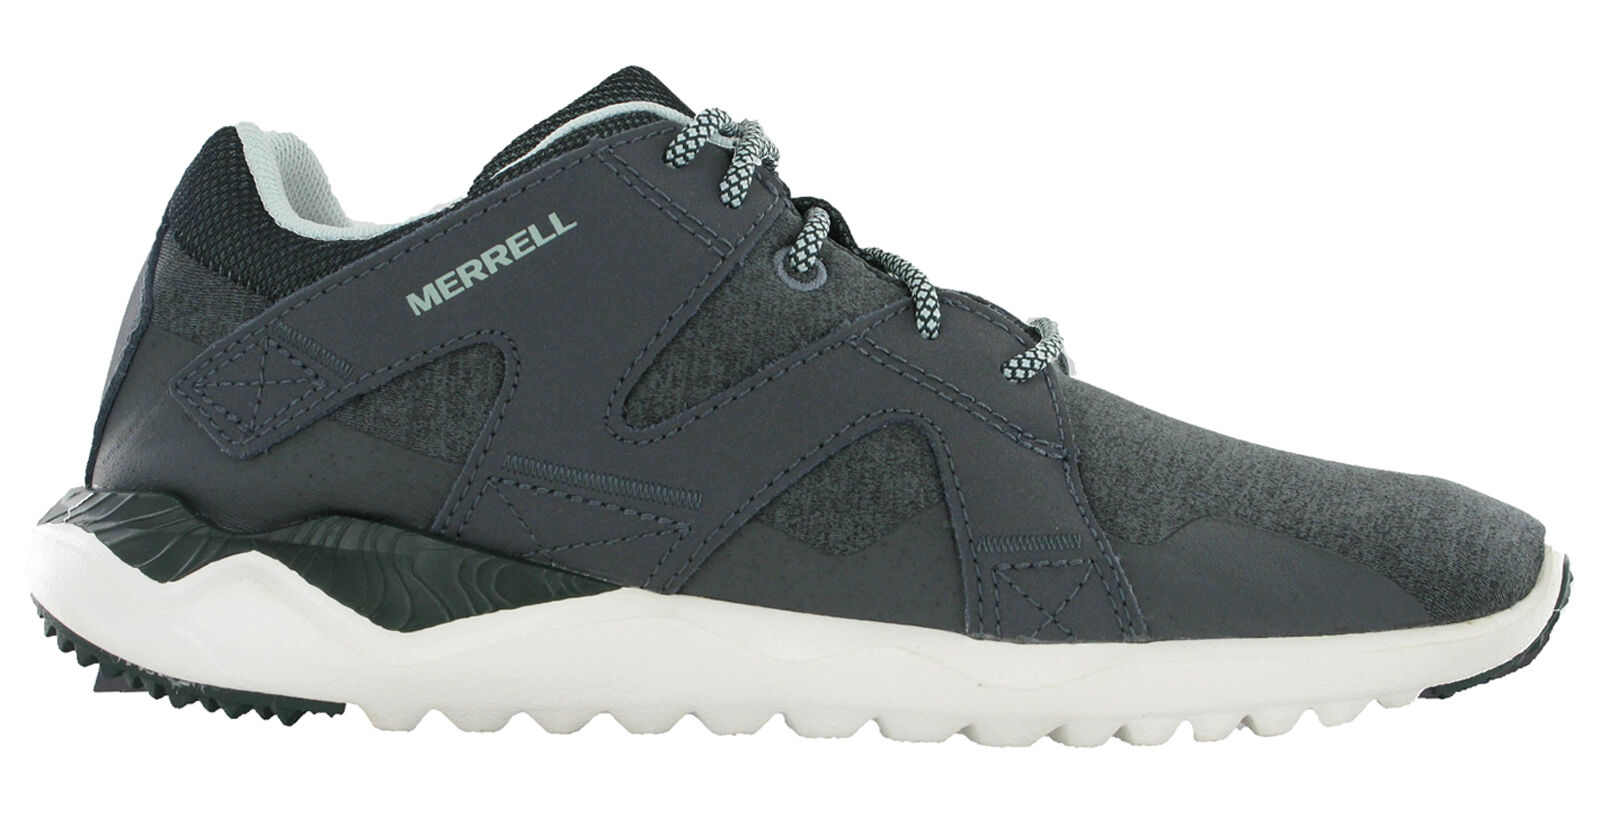 Merrell ISXI8 Lace Walking Trainers Niedrig-top Soft Damenschuhe Cushion Padding Walking Lace Fashion d25565